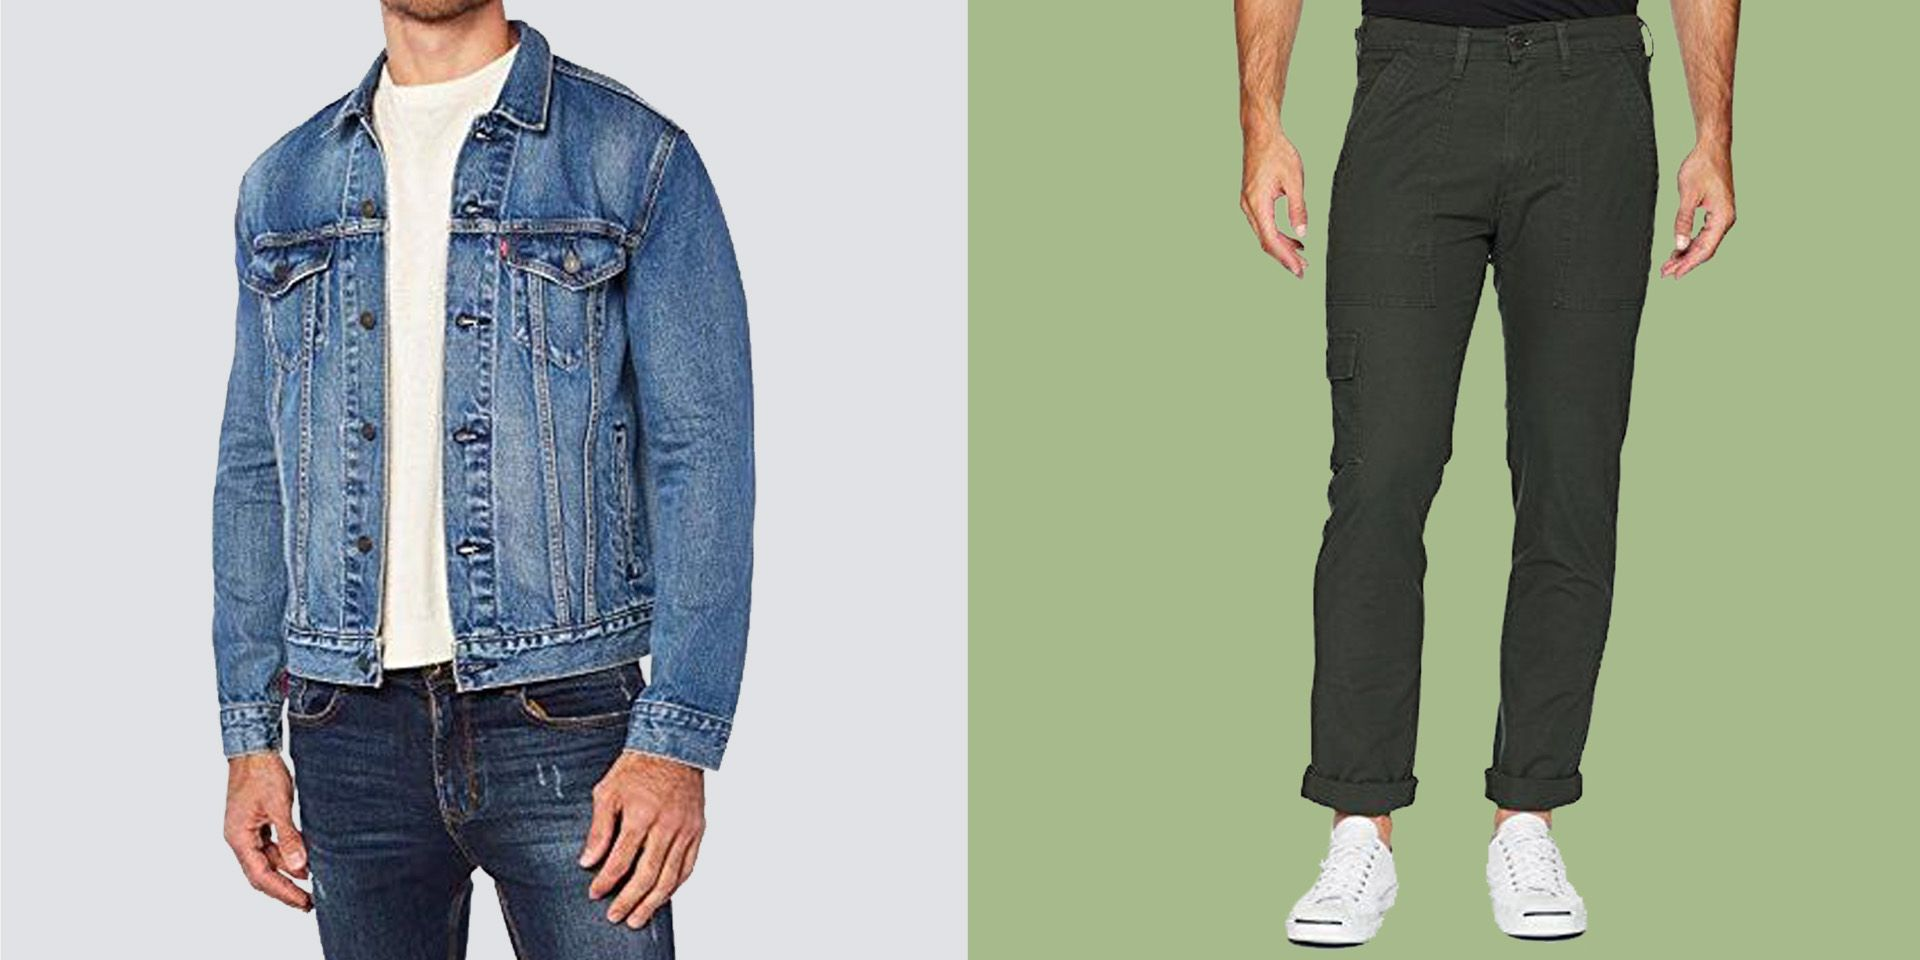 Amazon's Big Levi's Sale Has Steep Discounts on Jeans, Jackets, and More